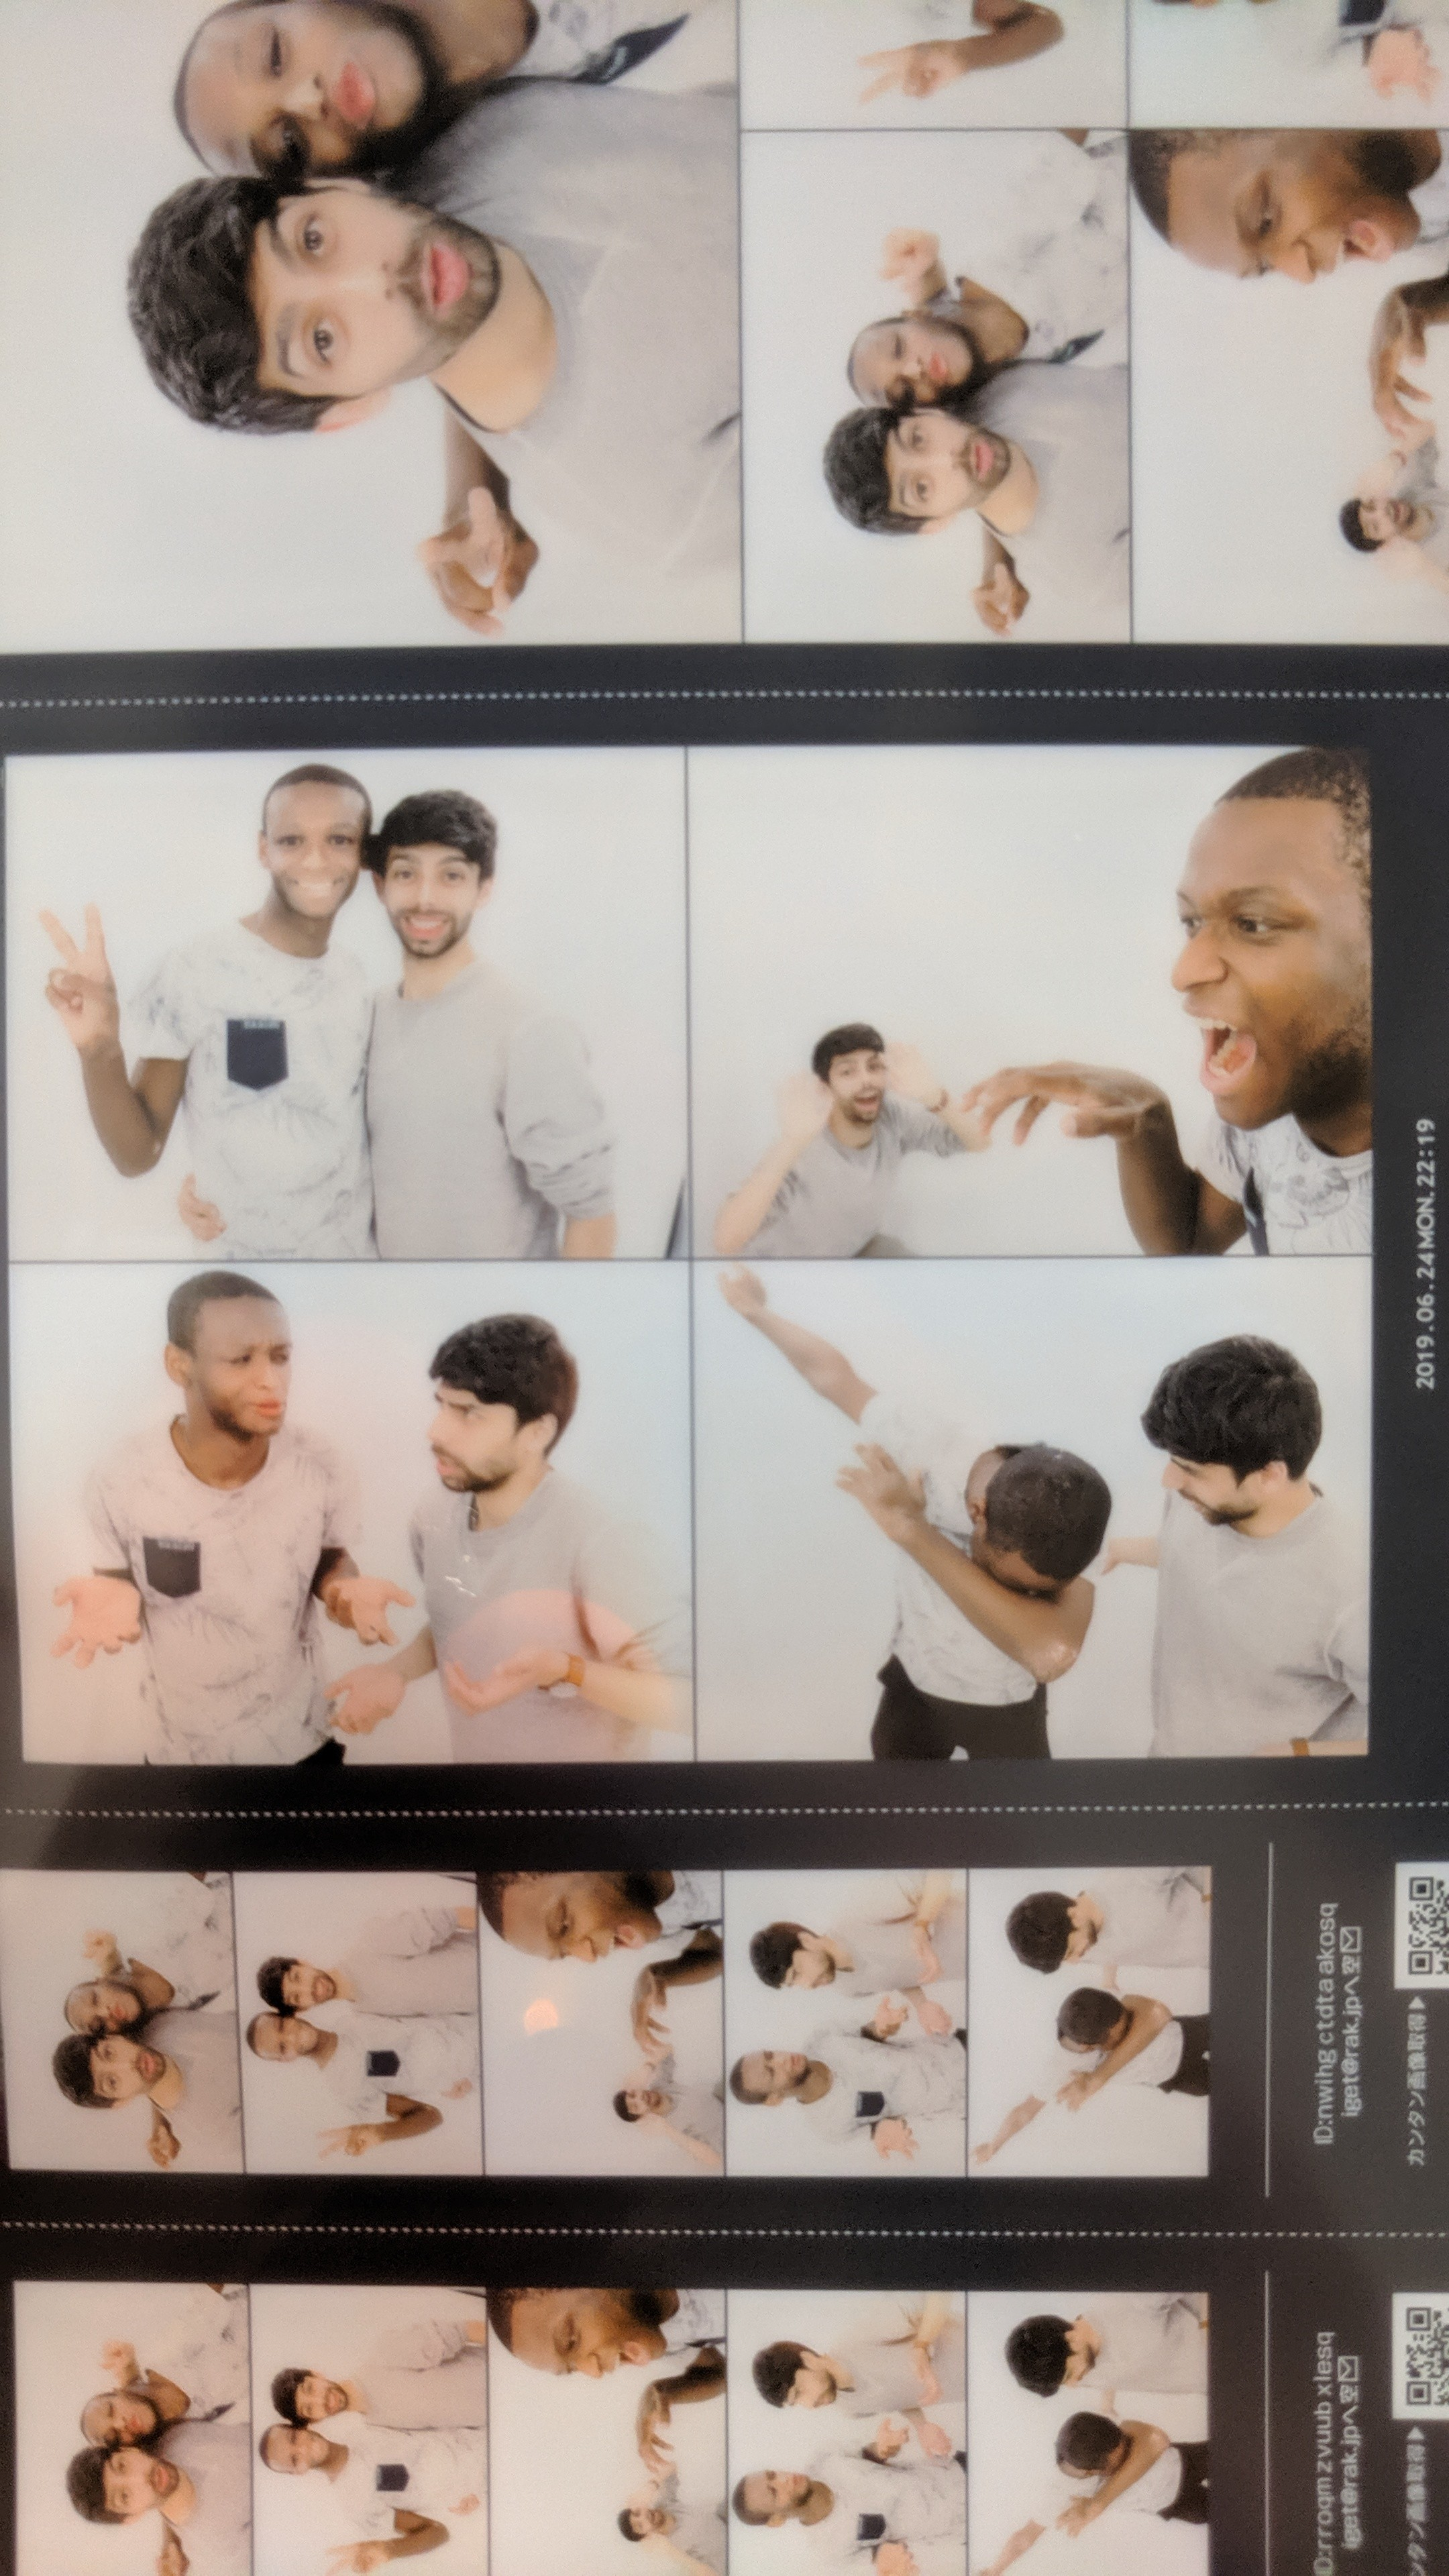 Japanese photo booths are one of the strangest experiences you can imagine. You're given challenge poses and then automatically touched up in all the photos.